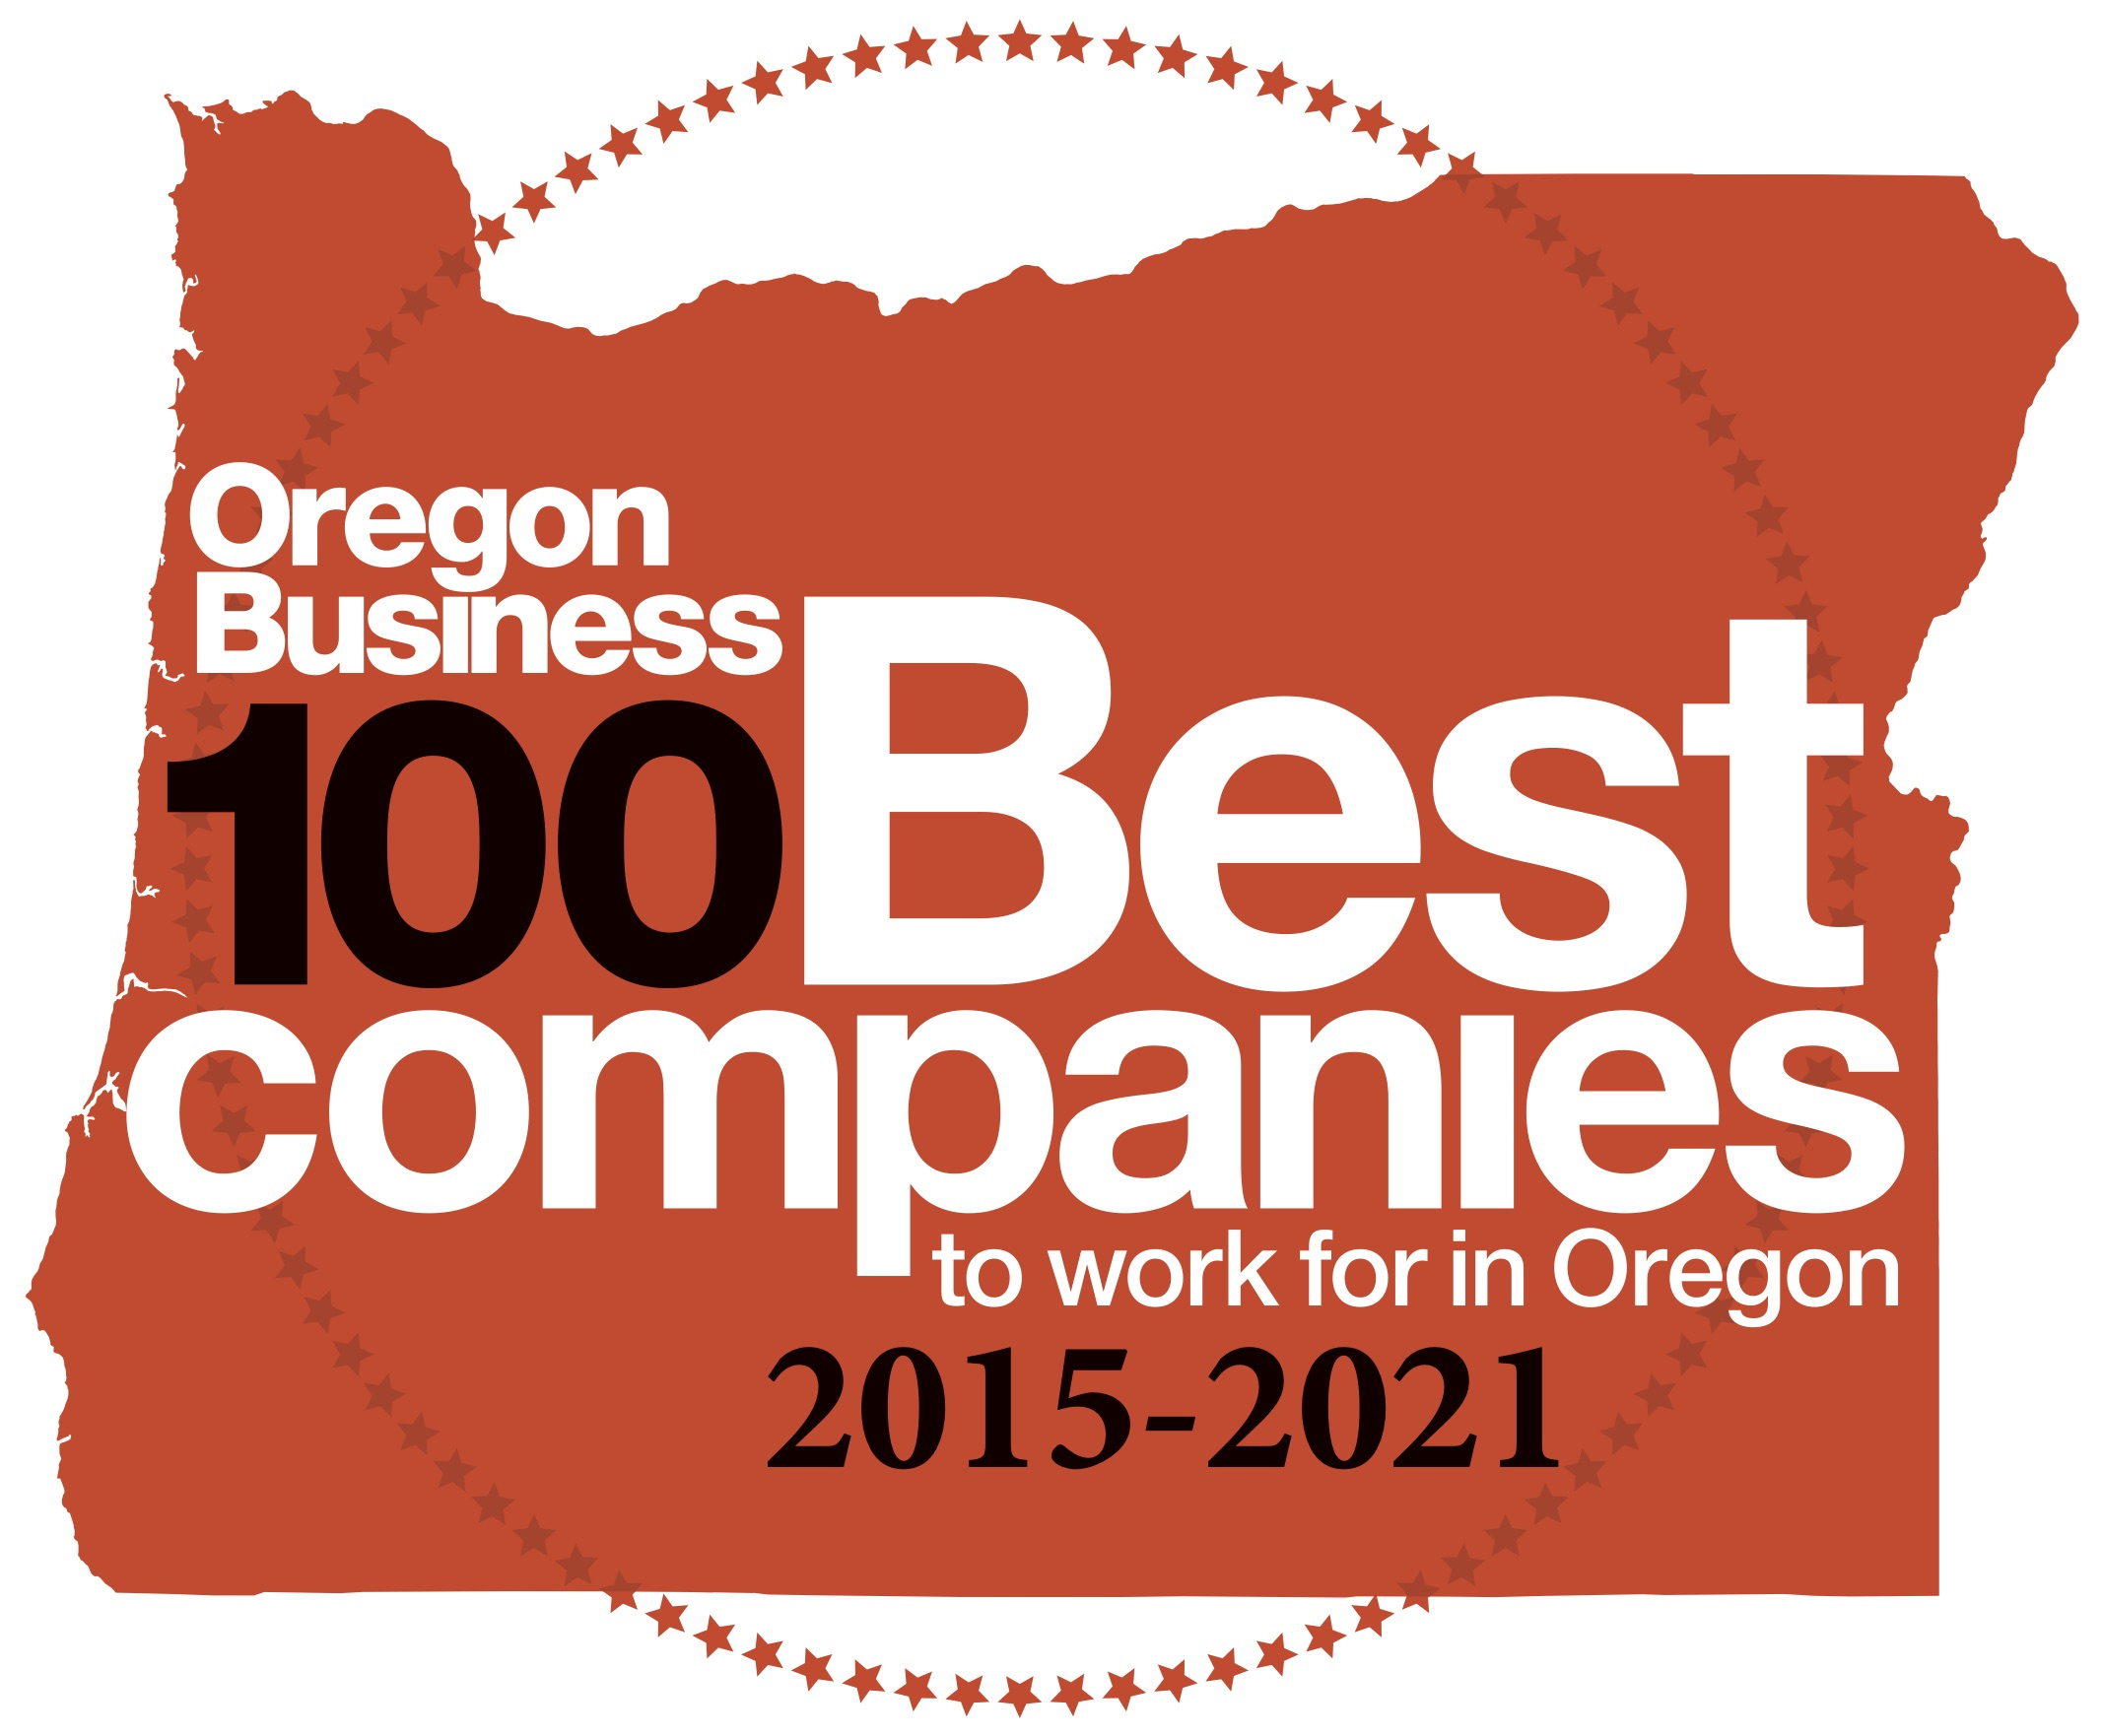 Best Company to work for Oregon 2021